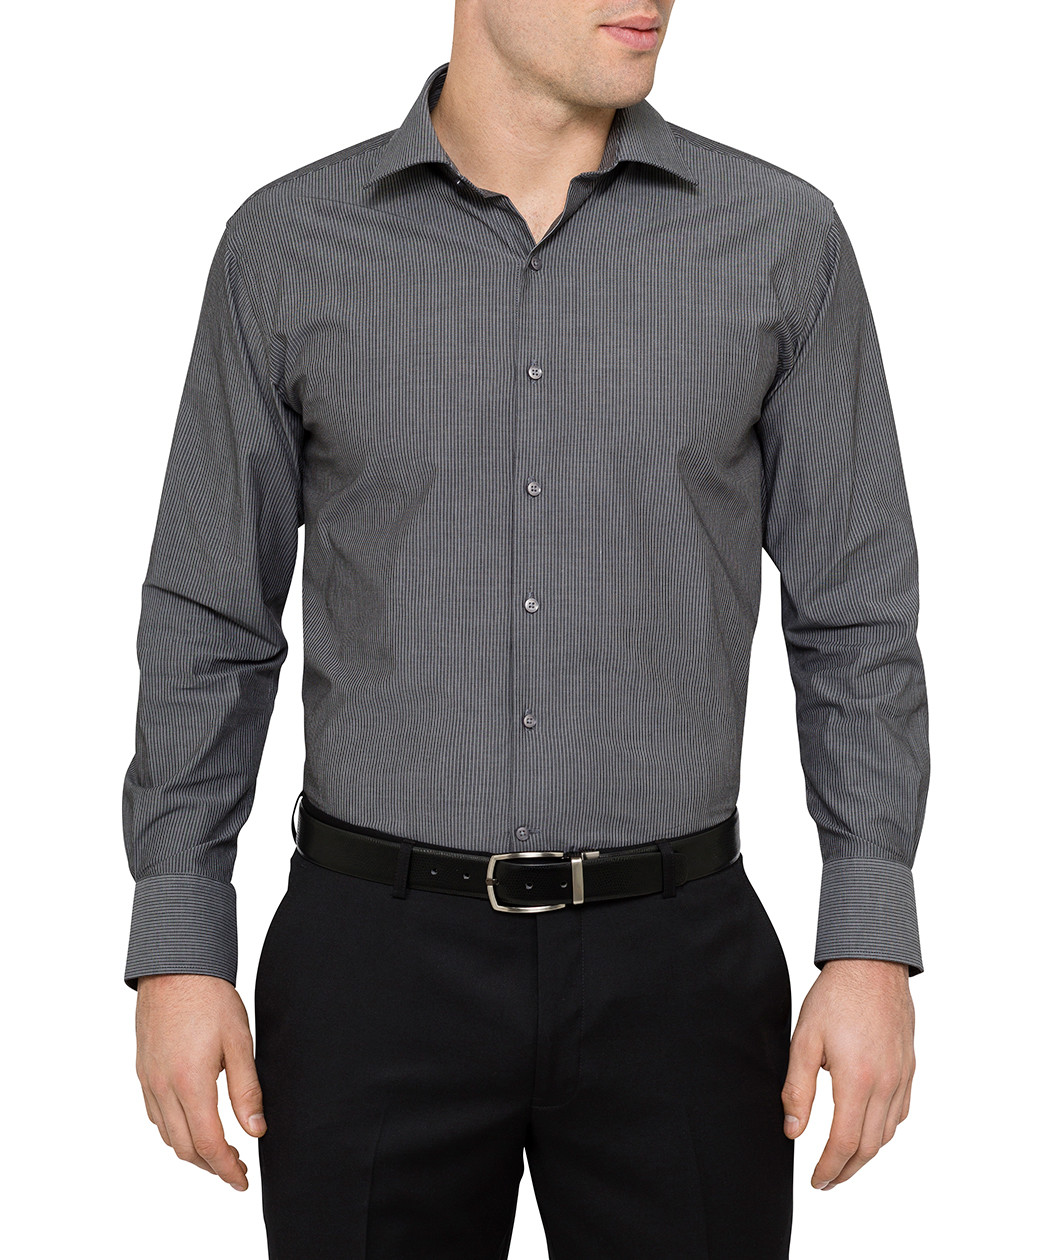 Van Heusen Traveler Shirt Slim Fit Summer Cook